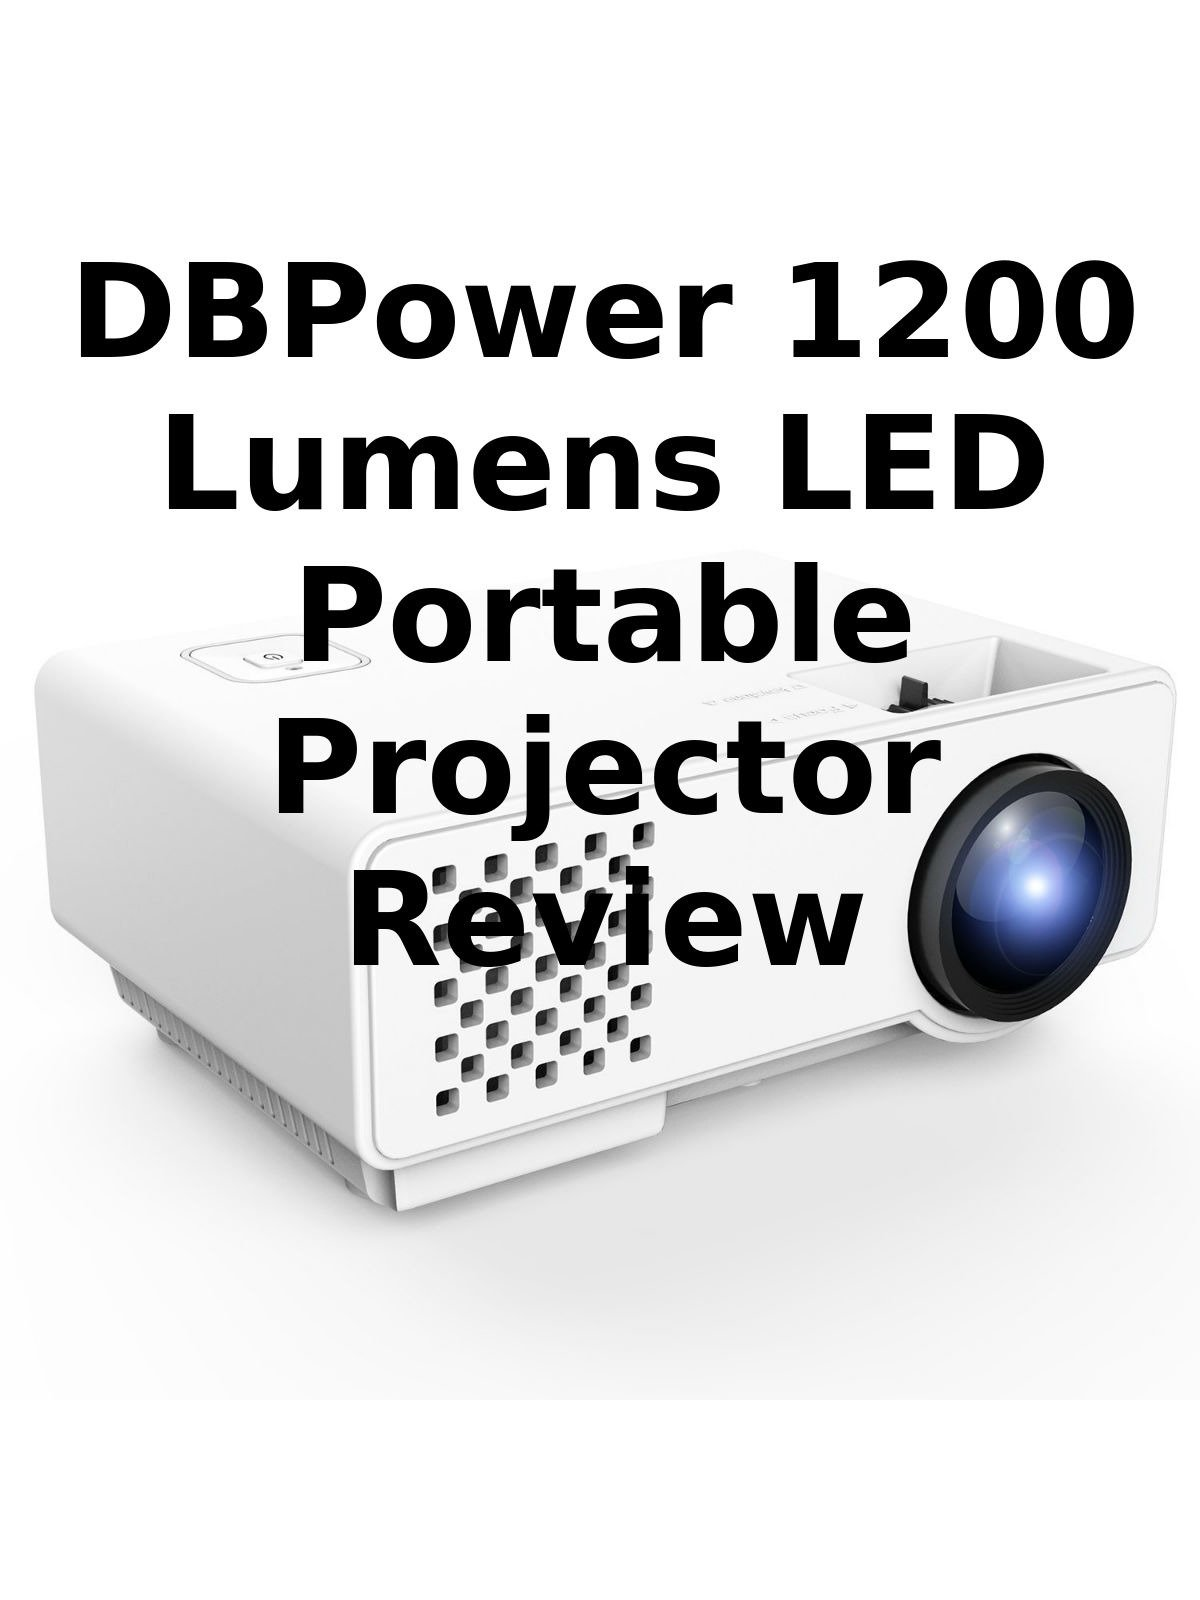 Review: DBPower 1200 Lumens LED Portable Projector Review on Amazon Prime Video UK